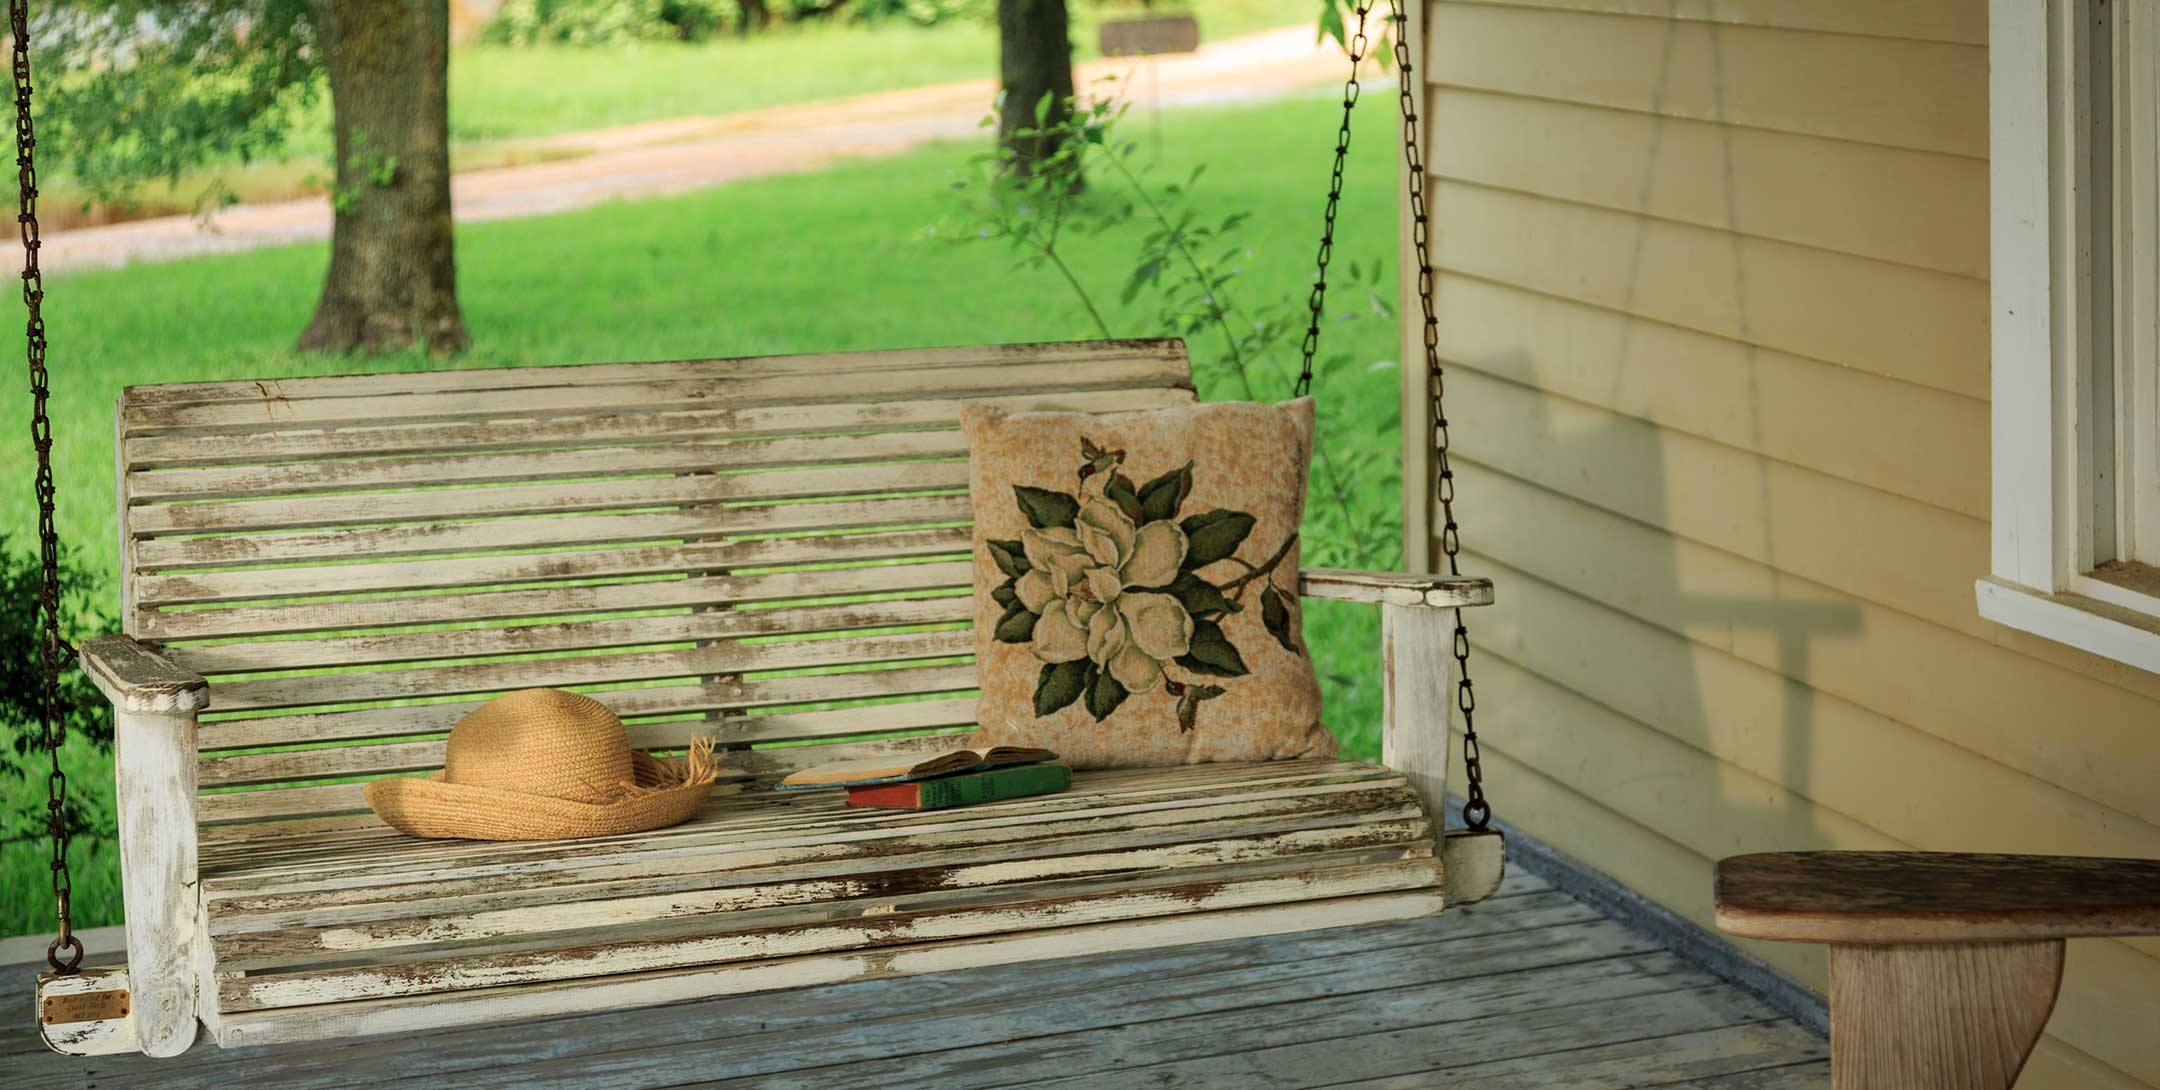 Dog Trot House Magnolia Suite porch swing